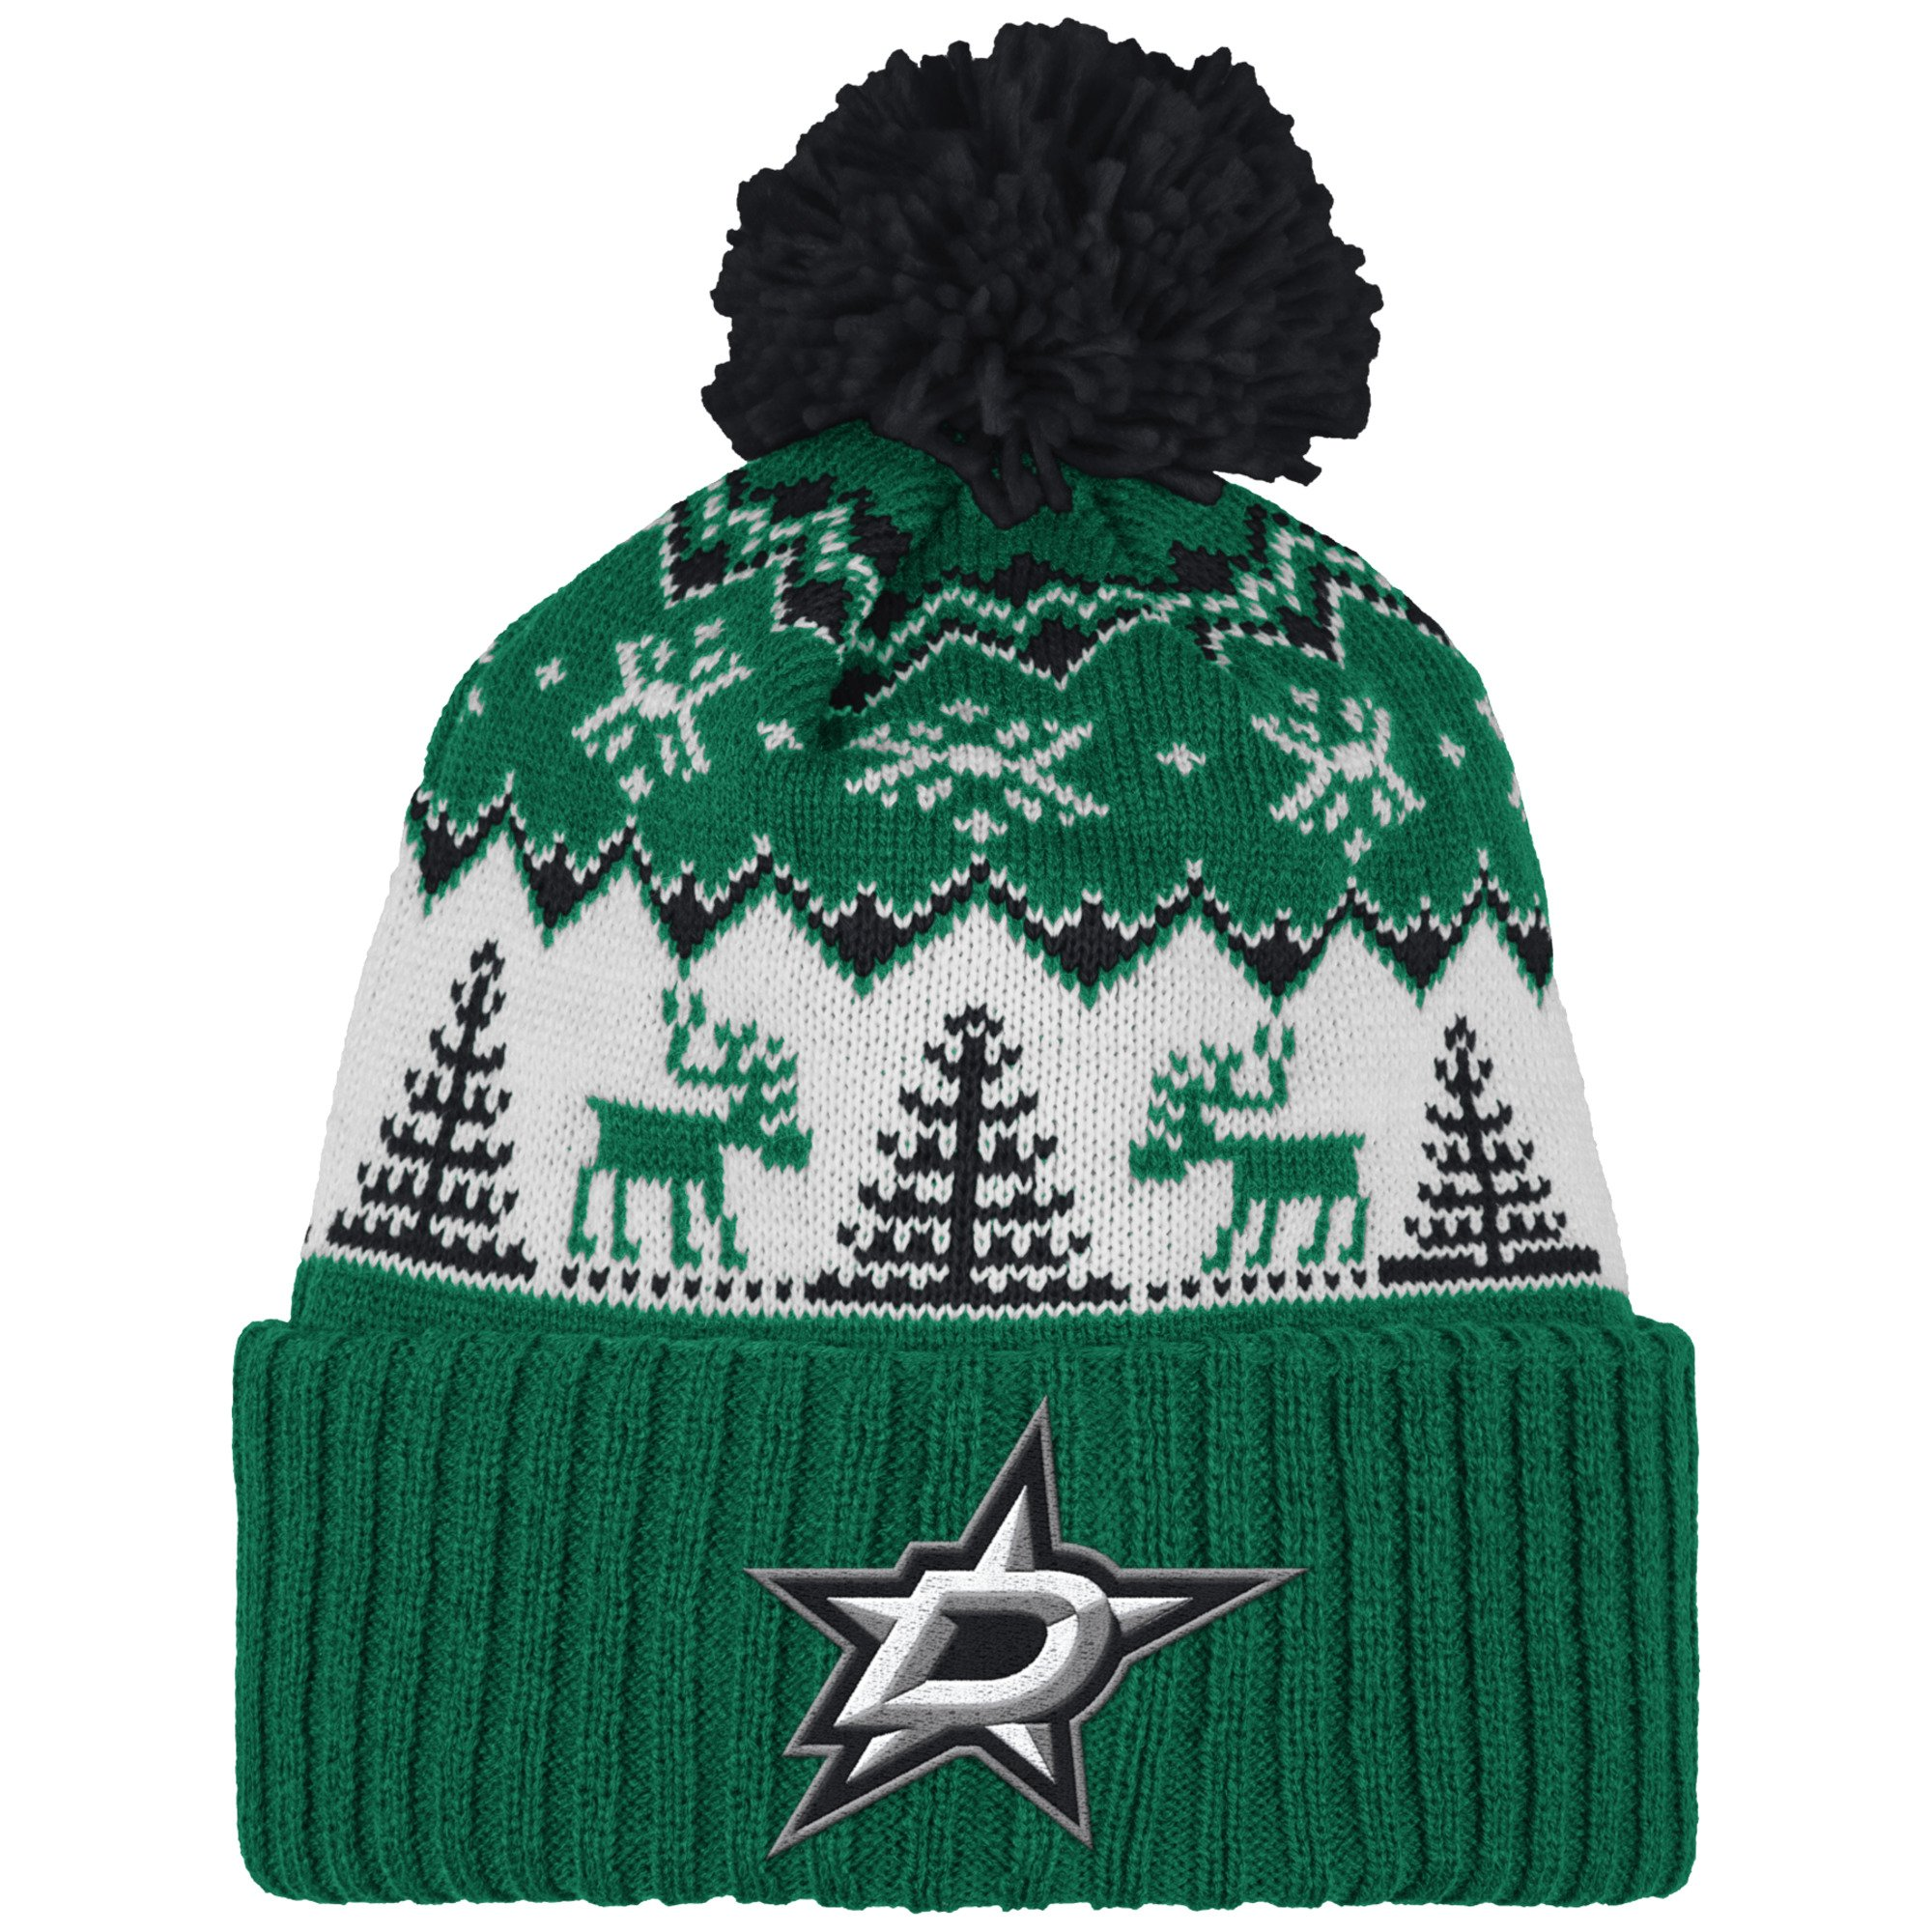 NHL Dallas Stars Reindeer Cuffed Pom Knit, One Size, Green